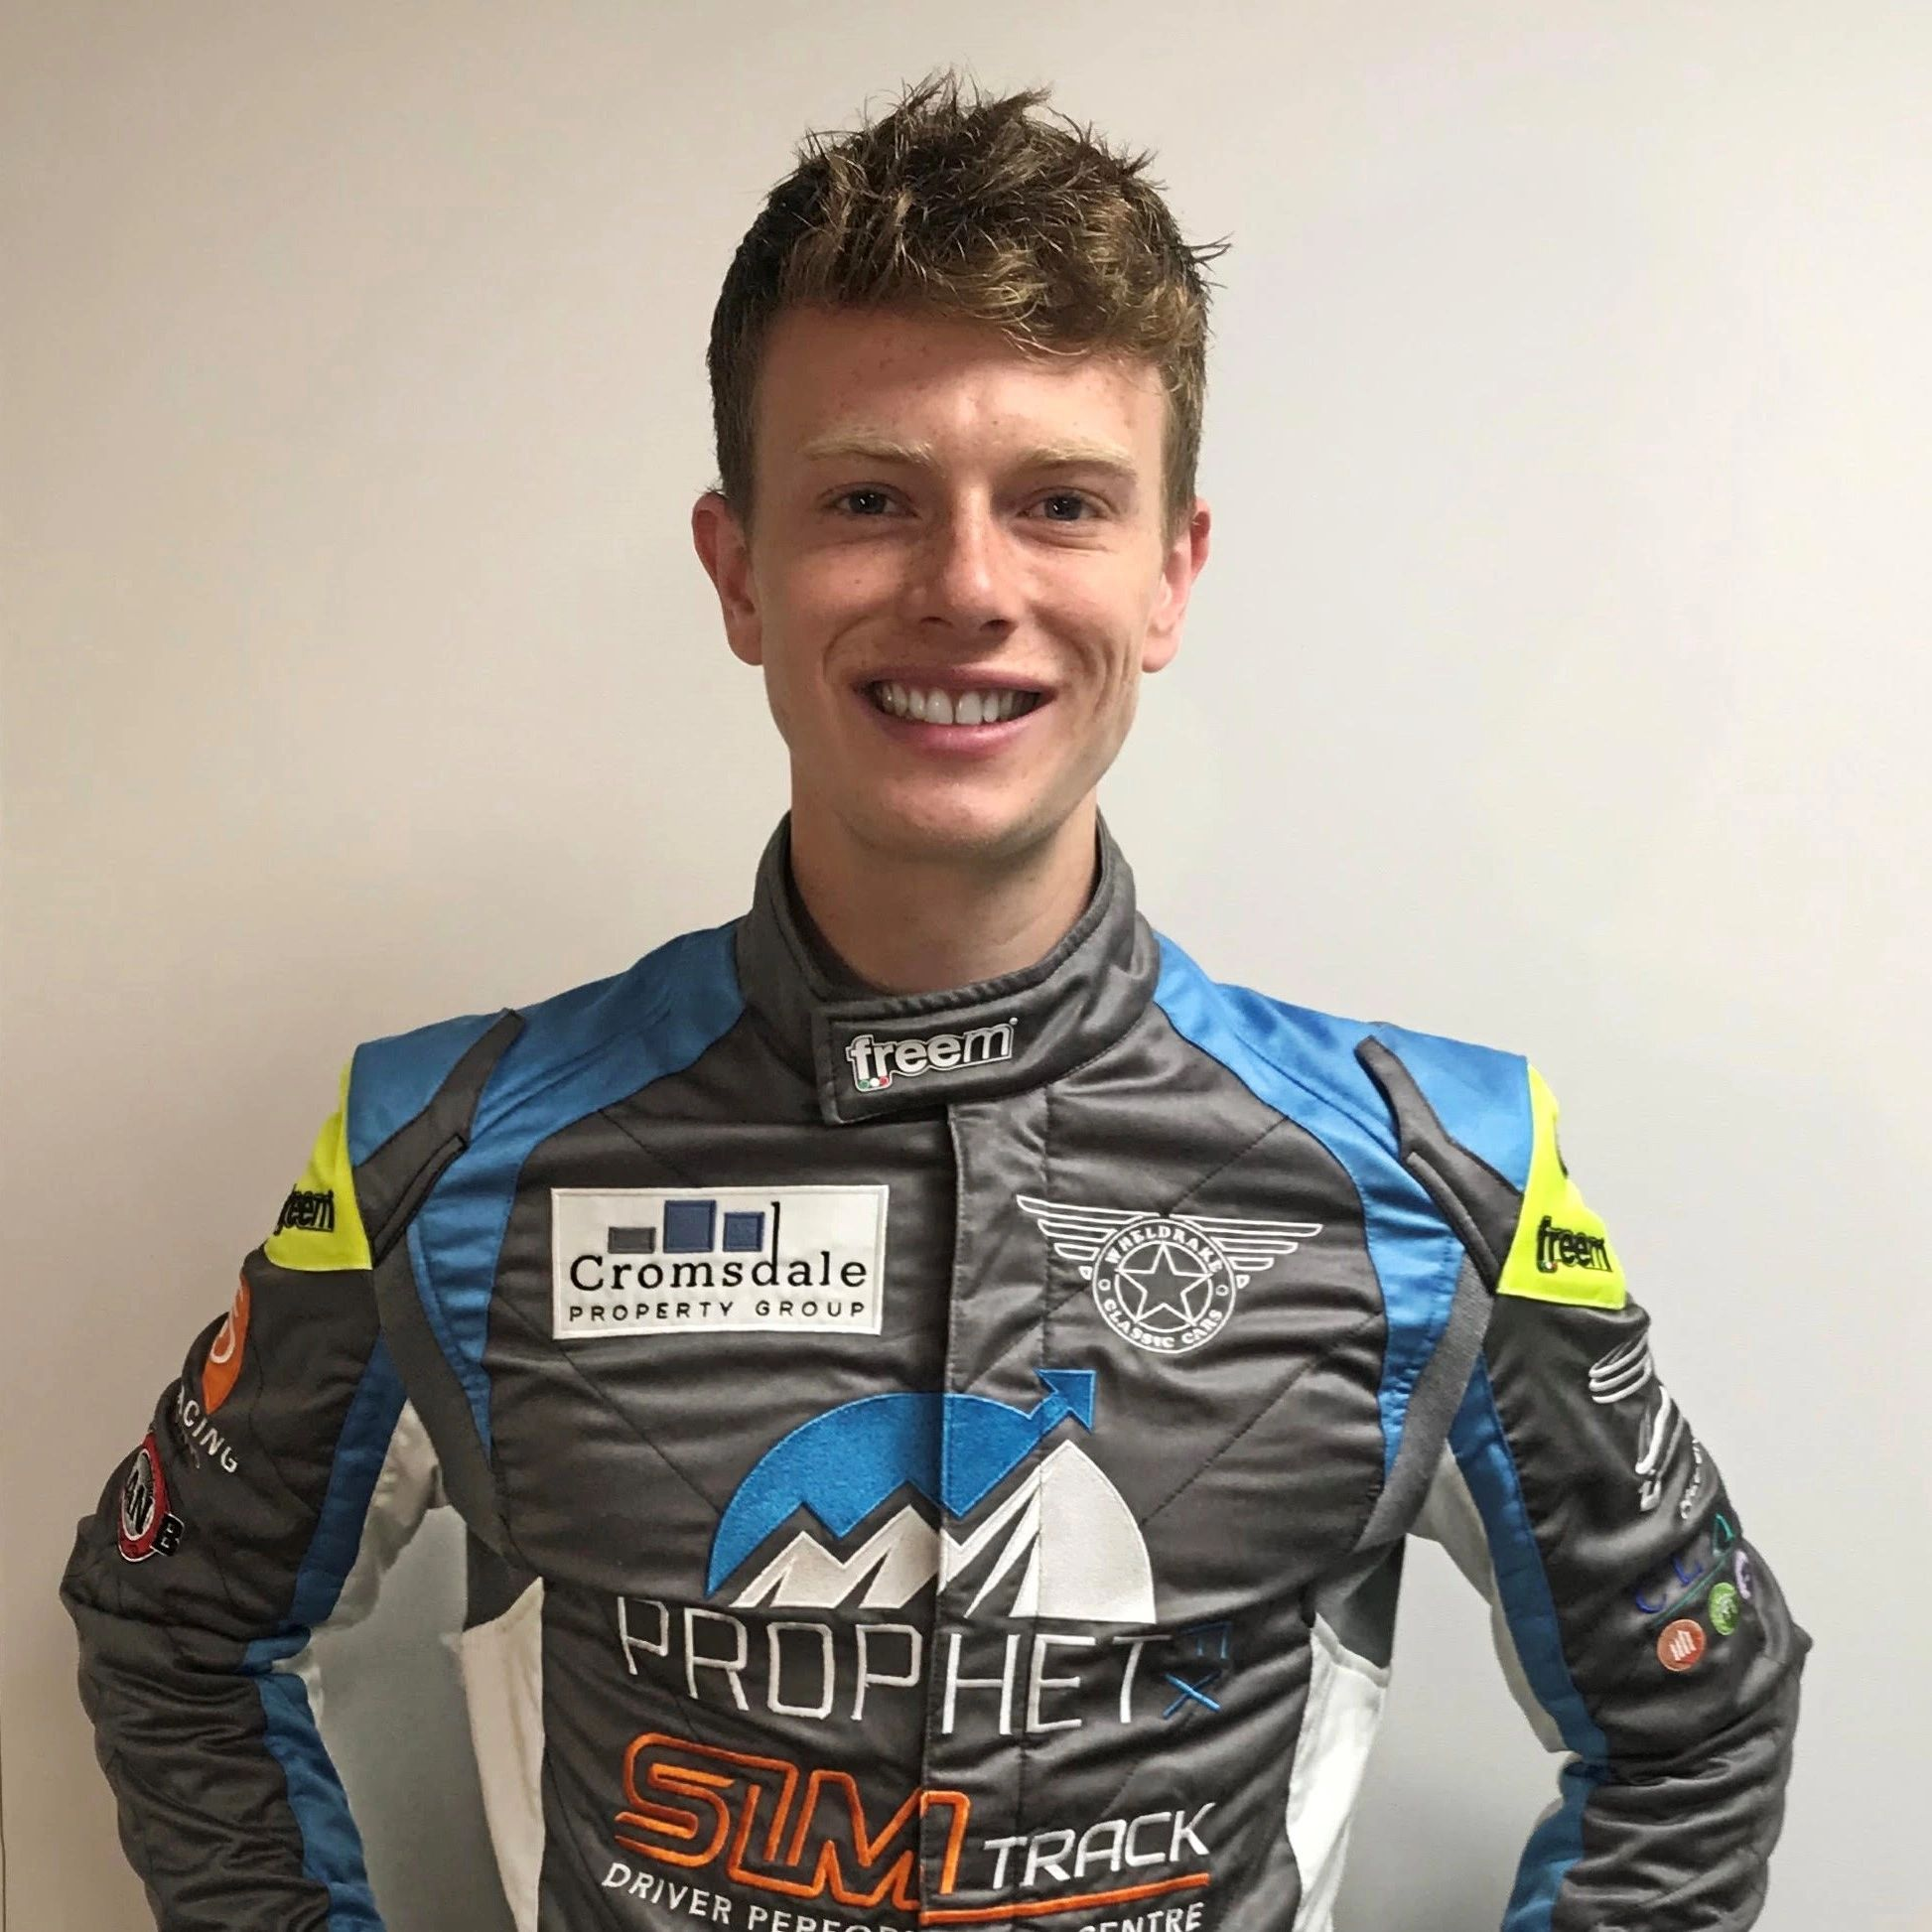 Photo of James Kellett racing driver of car 23